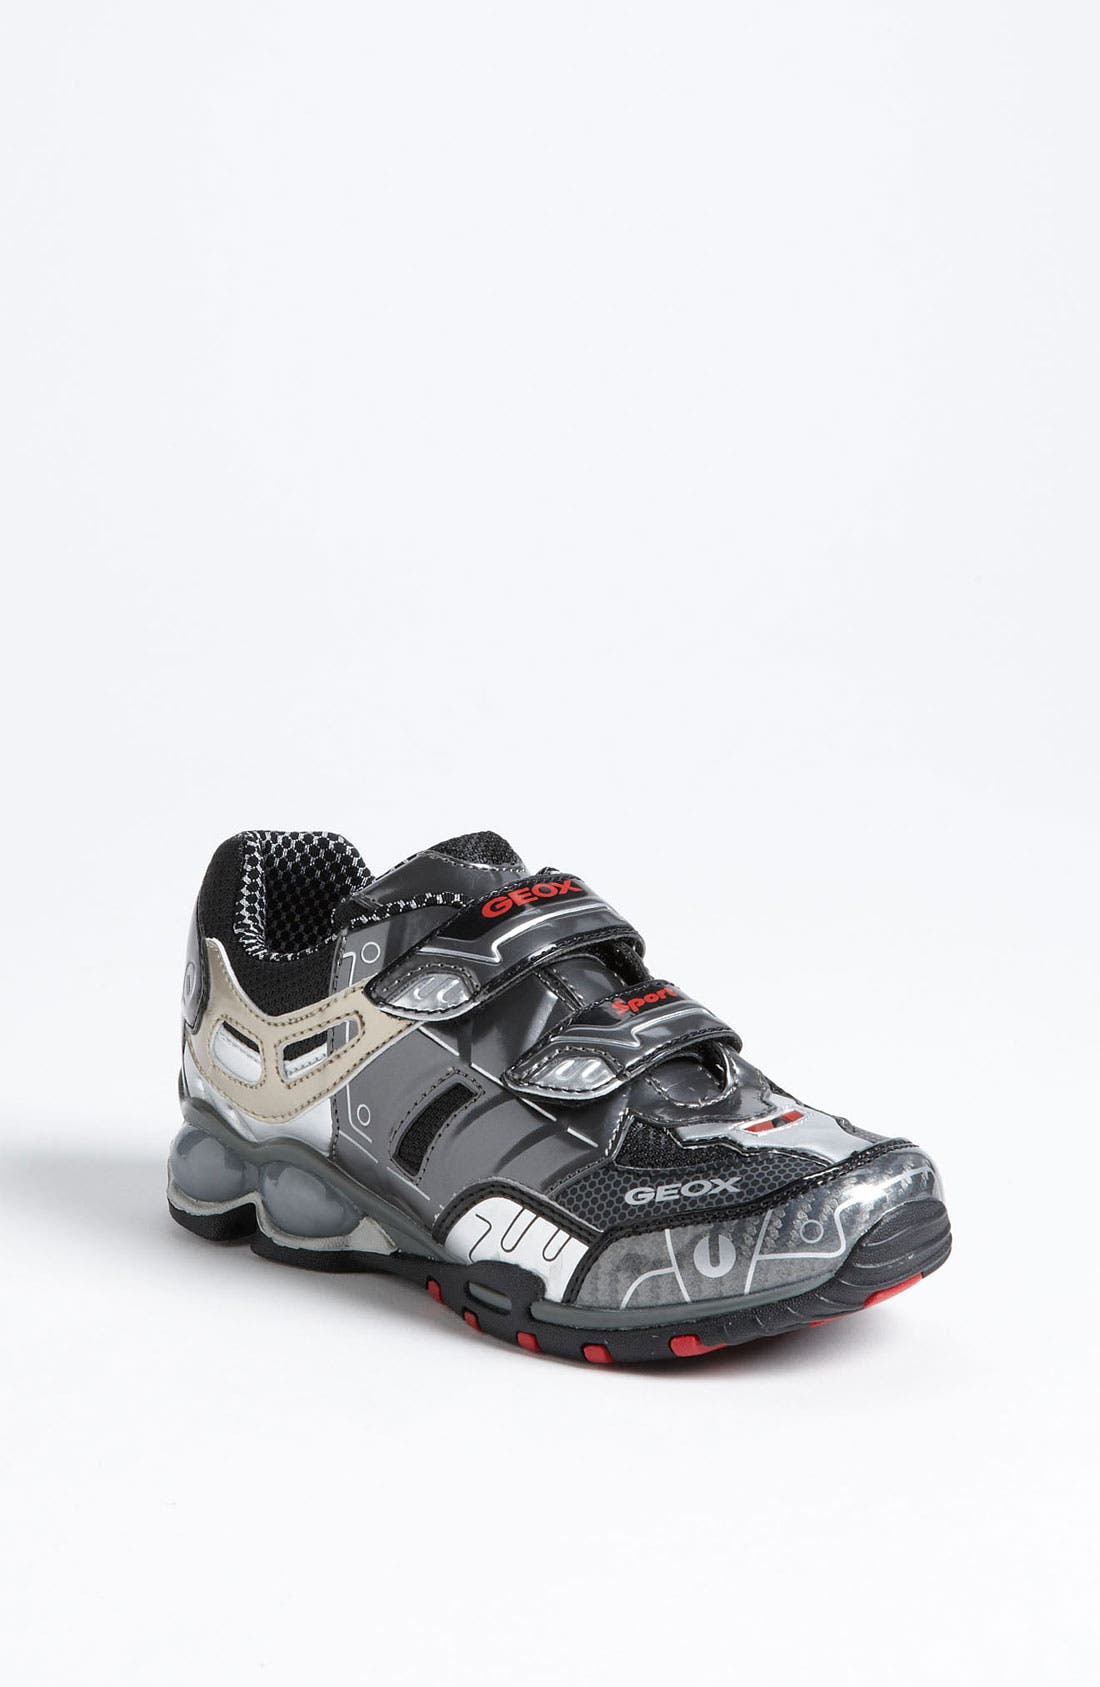 Alternate Image 1 Selected - Geox 'Fighter' Light-Up Sneaker (Toddler, Little Kid & Big Kid)